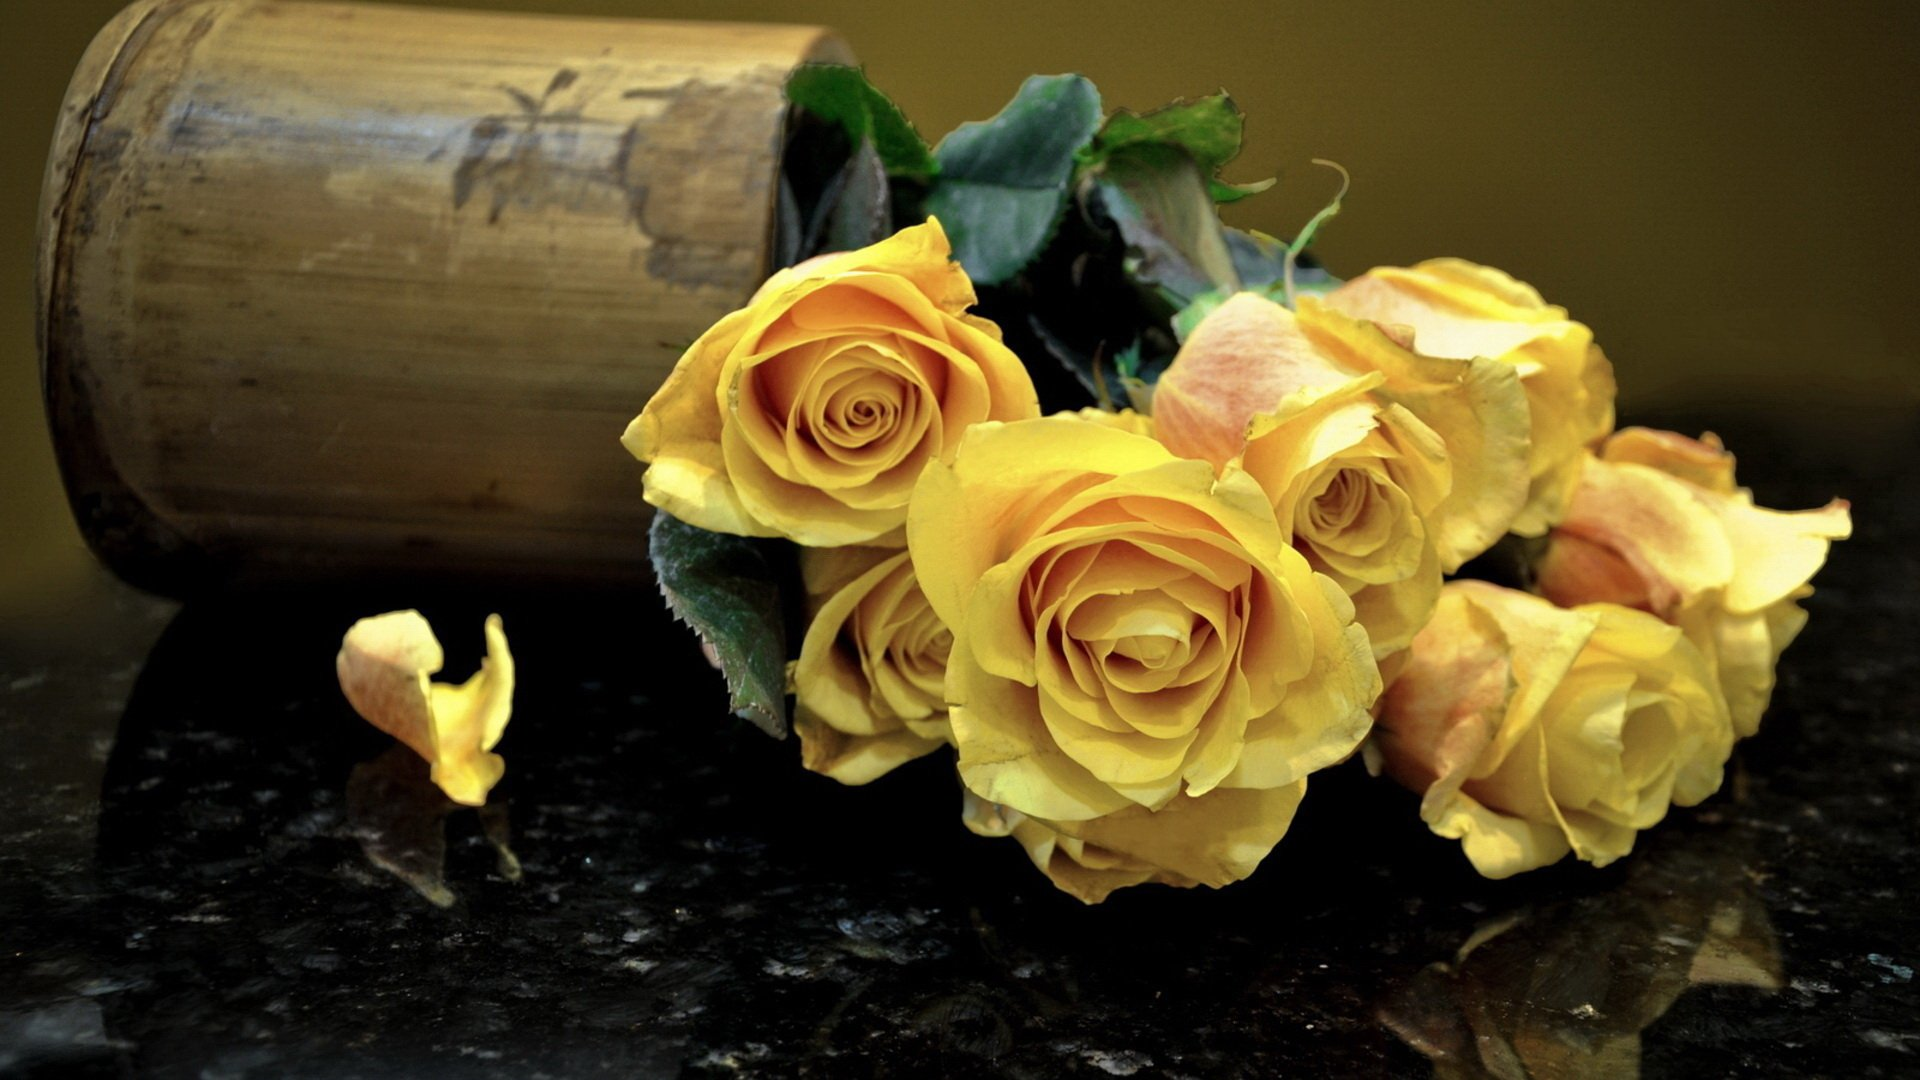 wallpaper.wiki-Flowers-wallpaper-best-rose-yellow-cute-PIC-WPD0012468